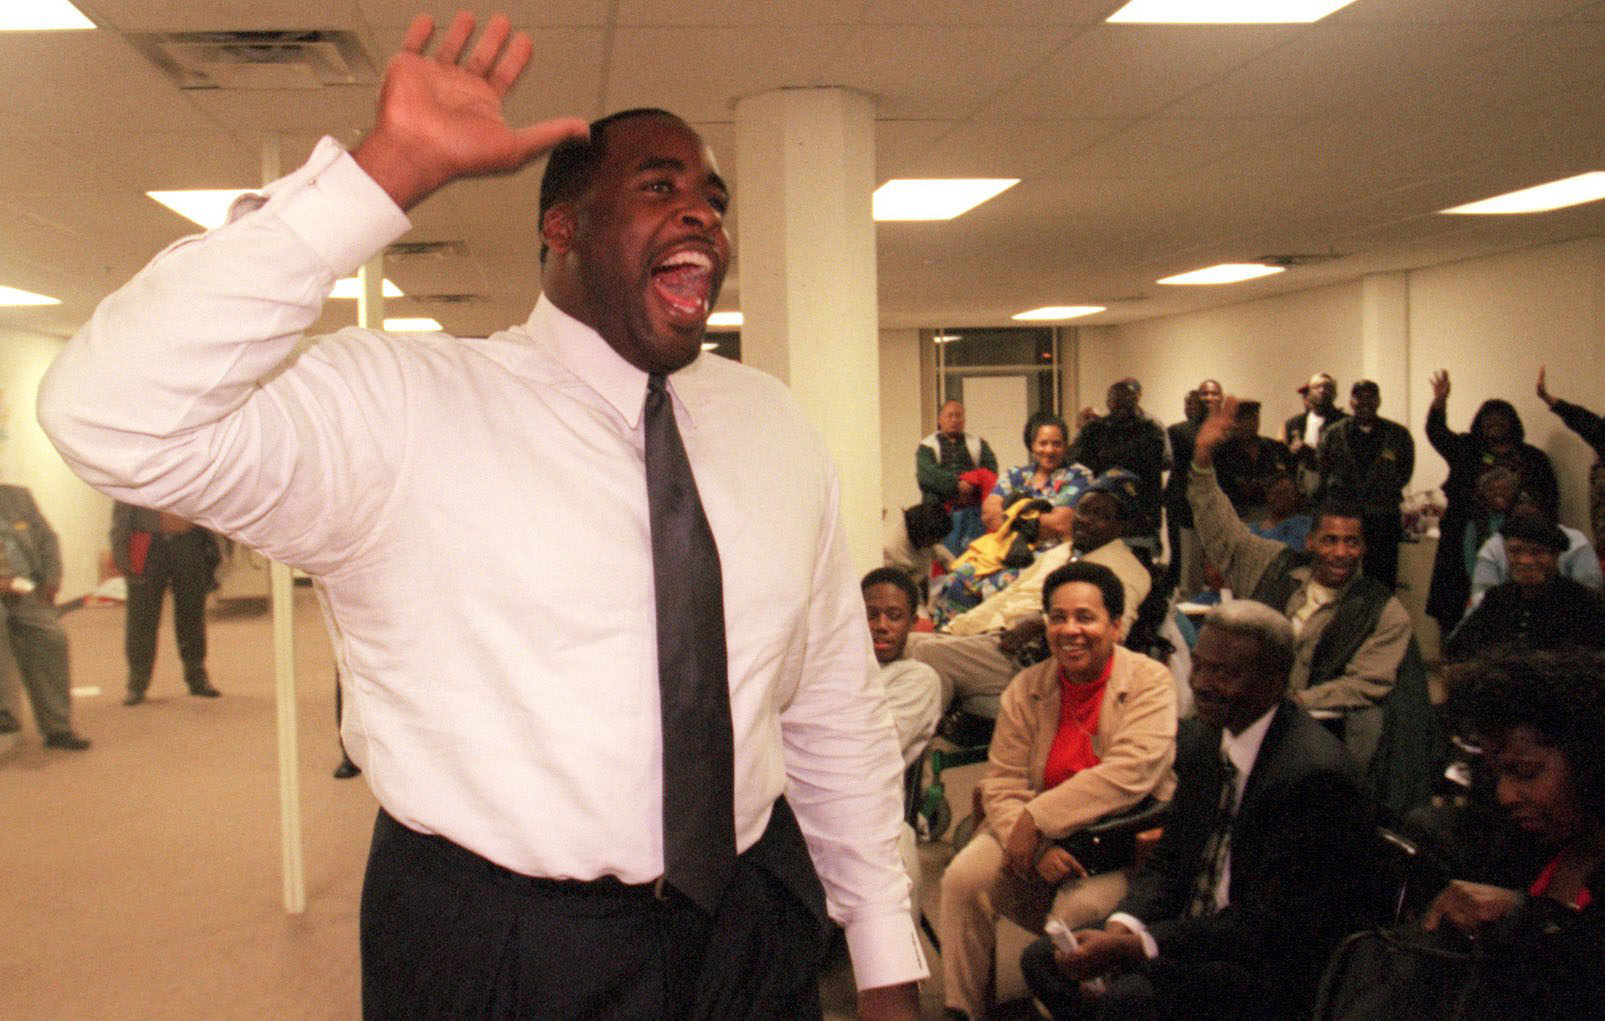 Detroit mayoral candidate Kwame Kilpatrick tries to rally campaign workers after nearly 14 hours of campaigning on October 24, 2001.  Courtesy of the Detroit Free Press.